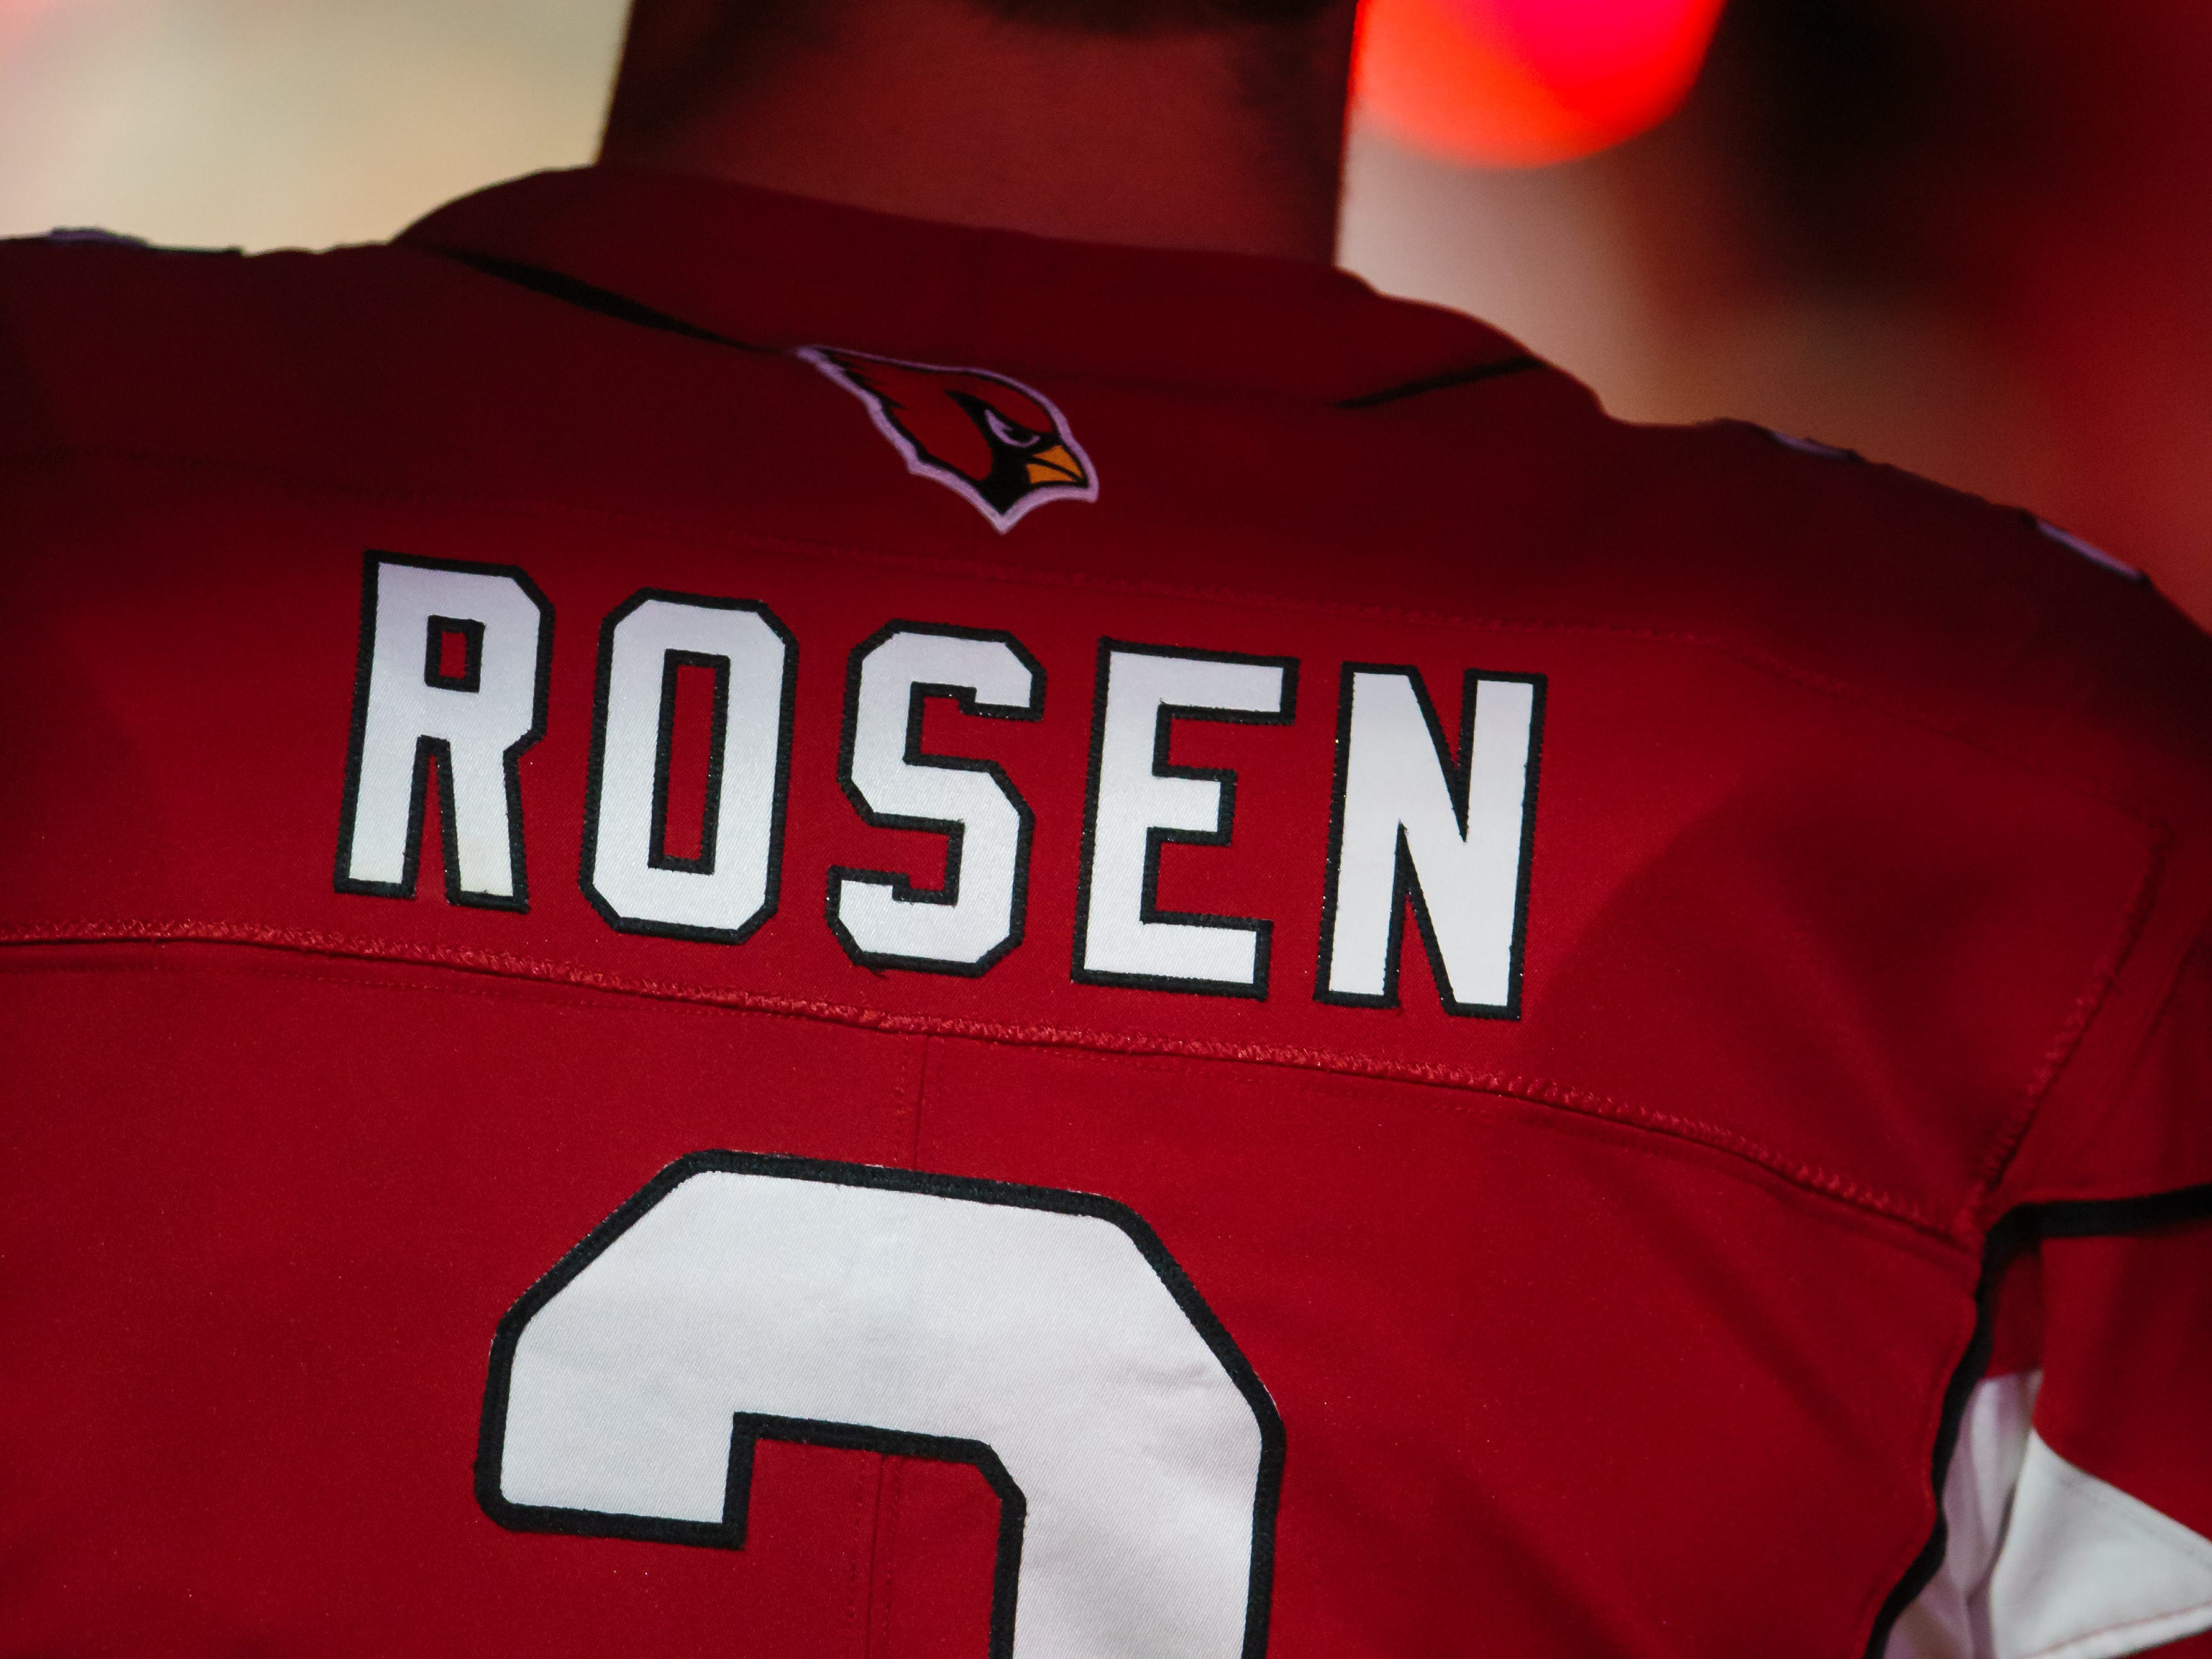 Arizona Cardinals quarterback Josh Rosen prepares to face the Seattle Seahawks at State Farm Stadium on Sept. 30 for his NFL starting debut.